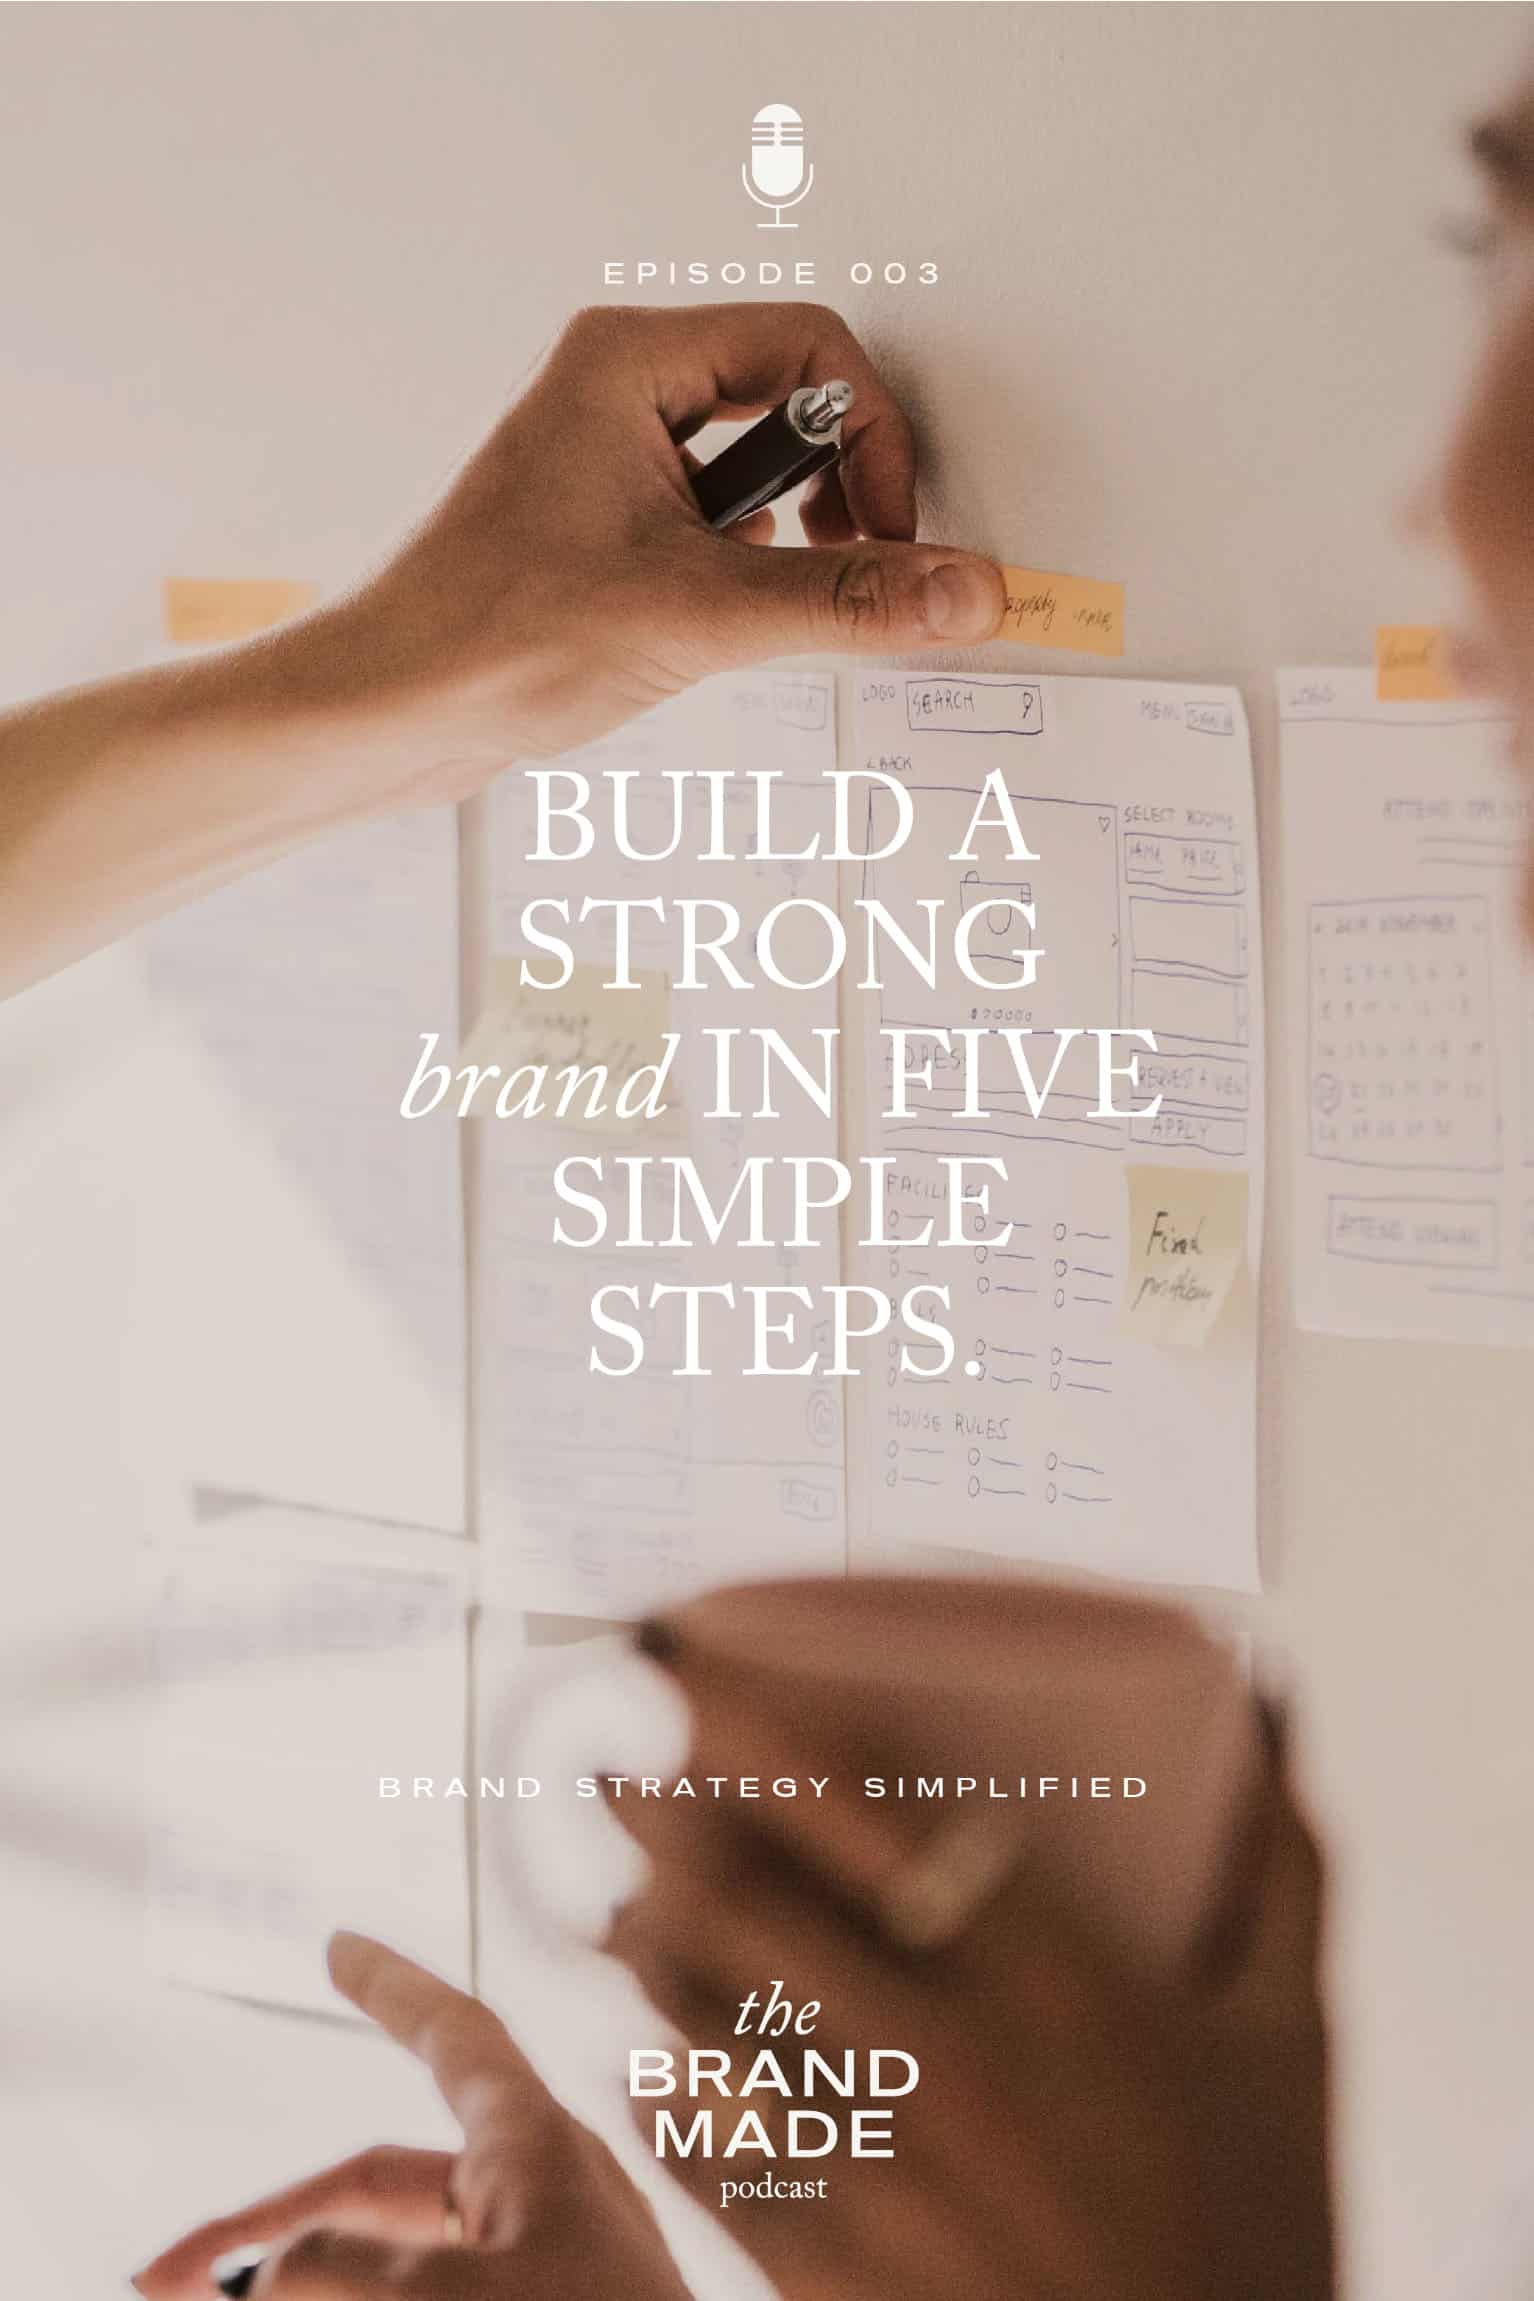 Brand Strategy - Promotional Image